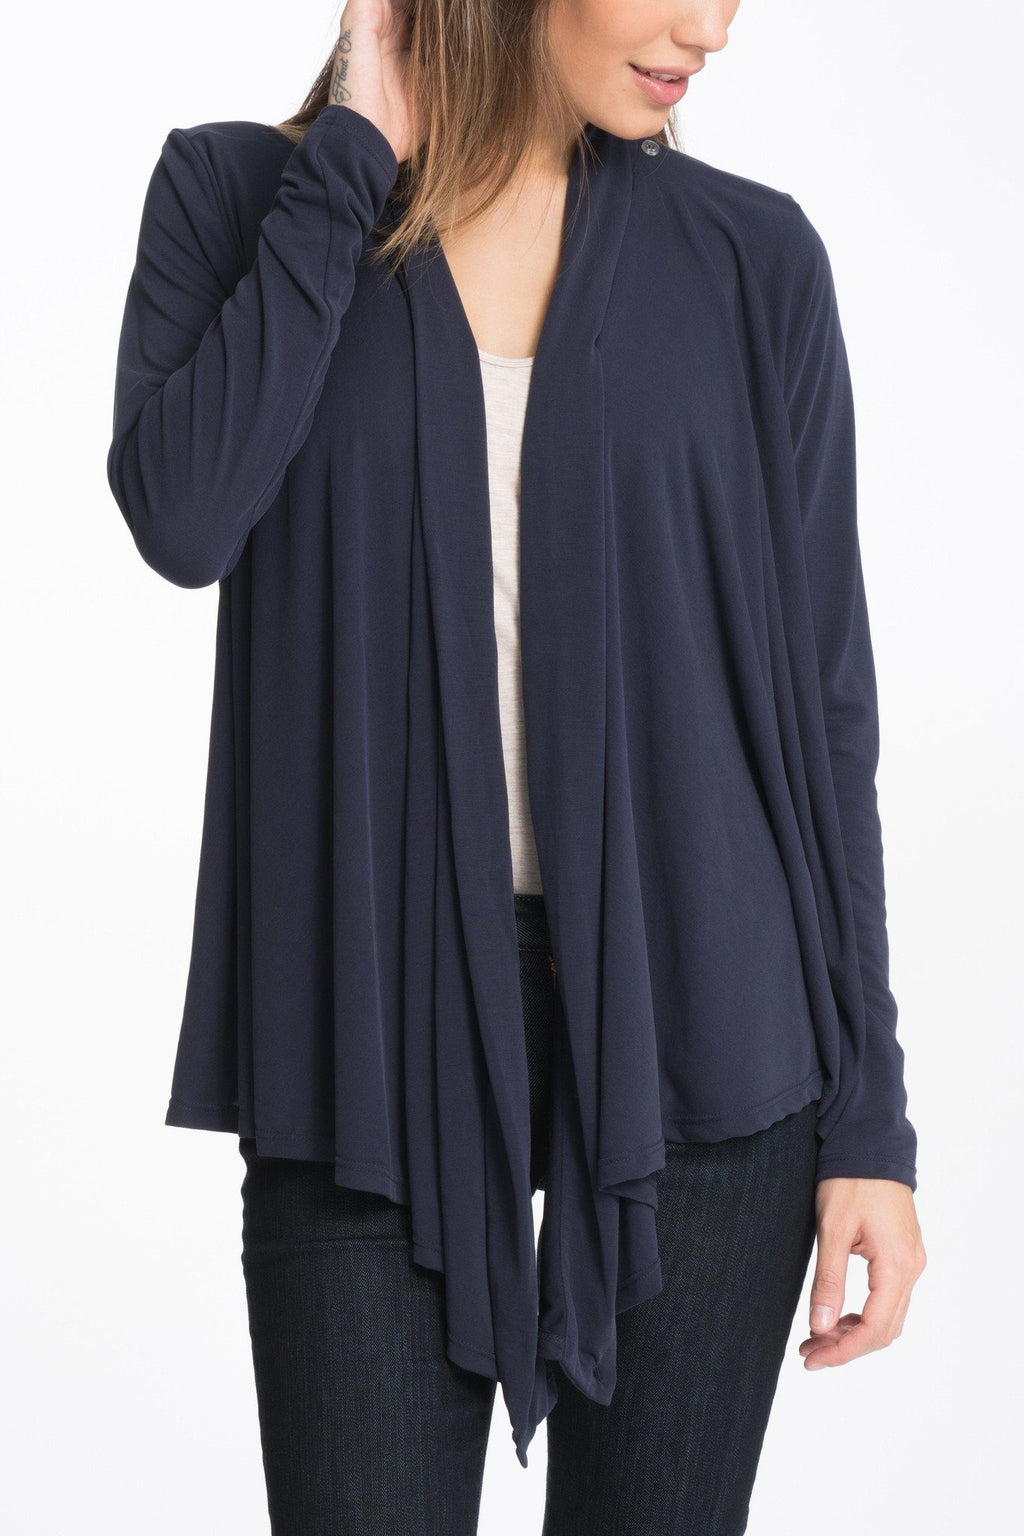 So Soft Three Ways Maternity Nursing Wrap Cardigan Wrap Bun Maternity Nursing Apparel